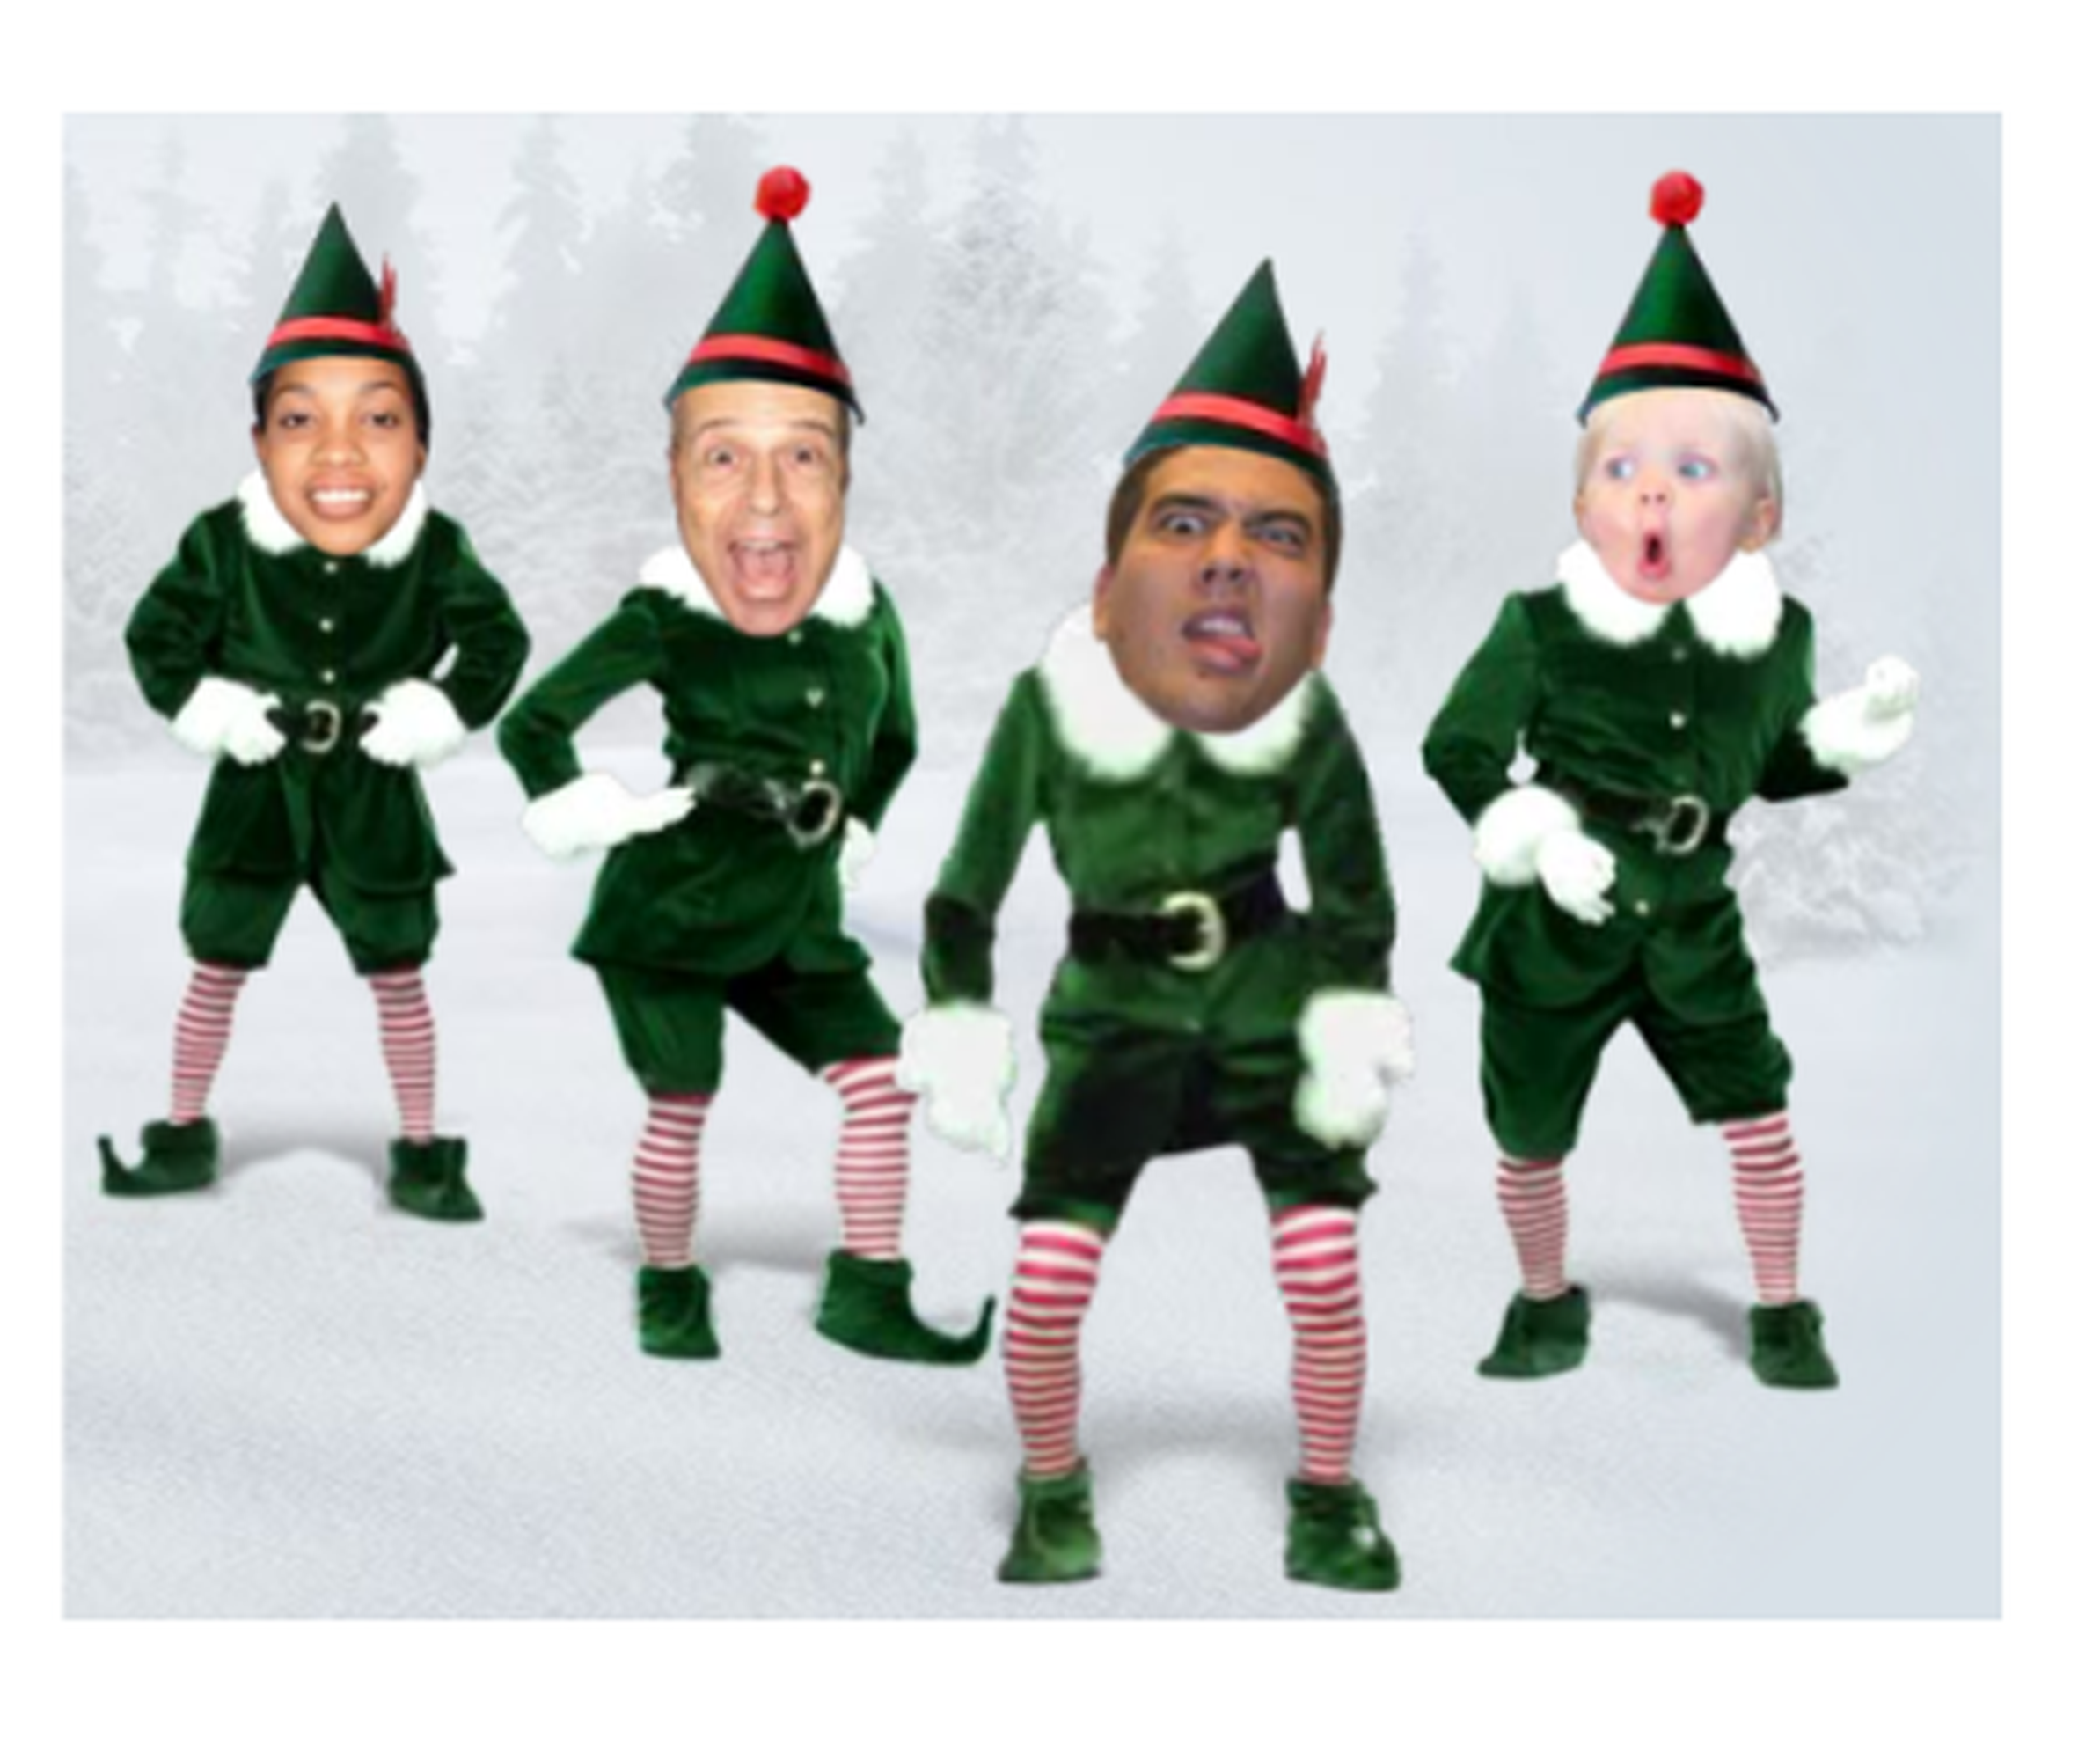 Dancing Elves Top the Charts. OfficeMax's Perfect Viral Campaign?.